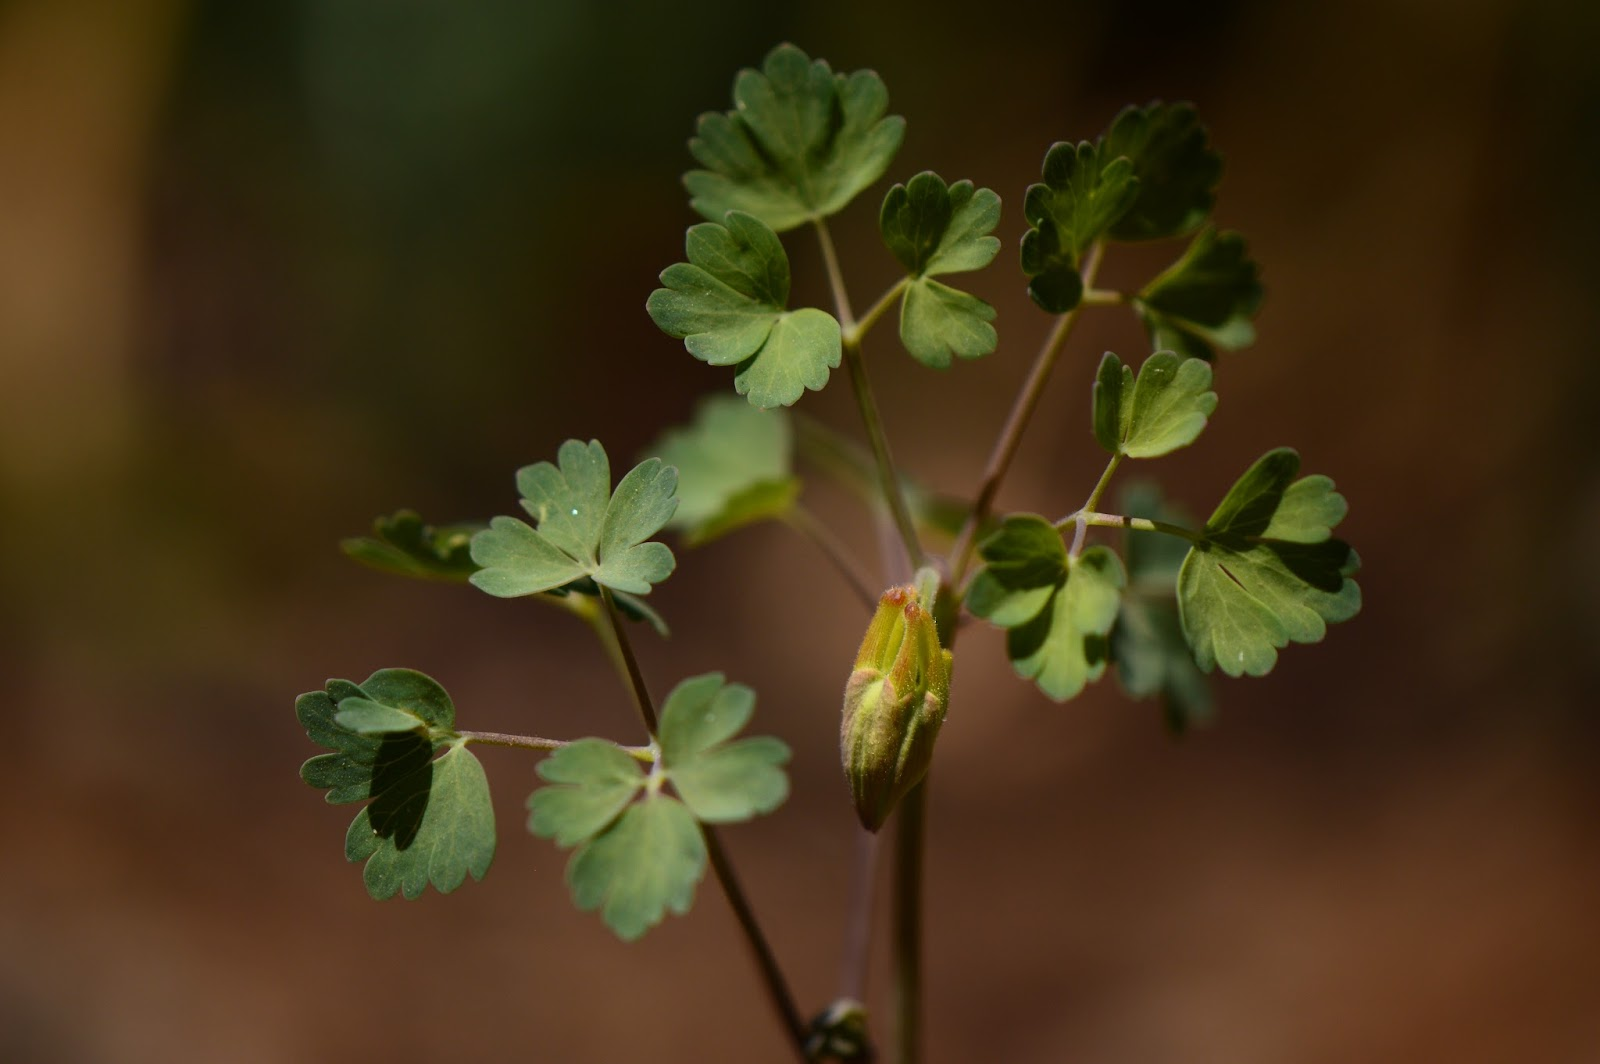 Aquilegia desertorum leaves with flower bud